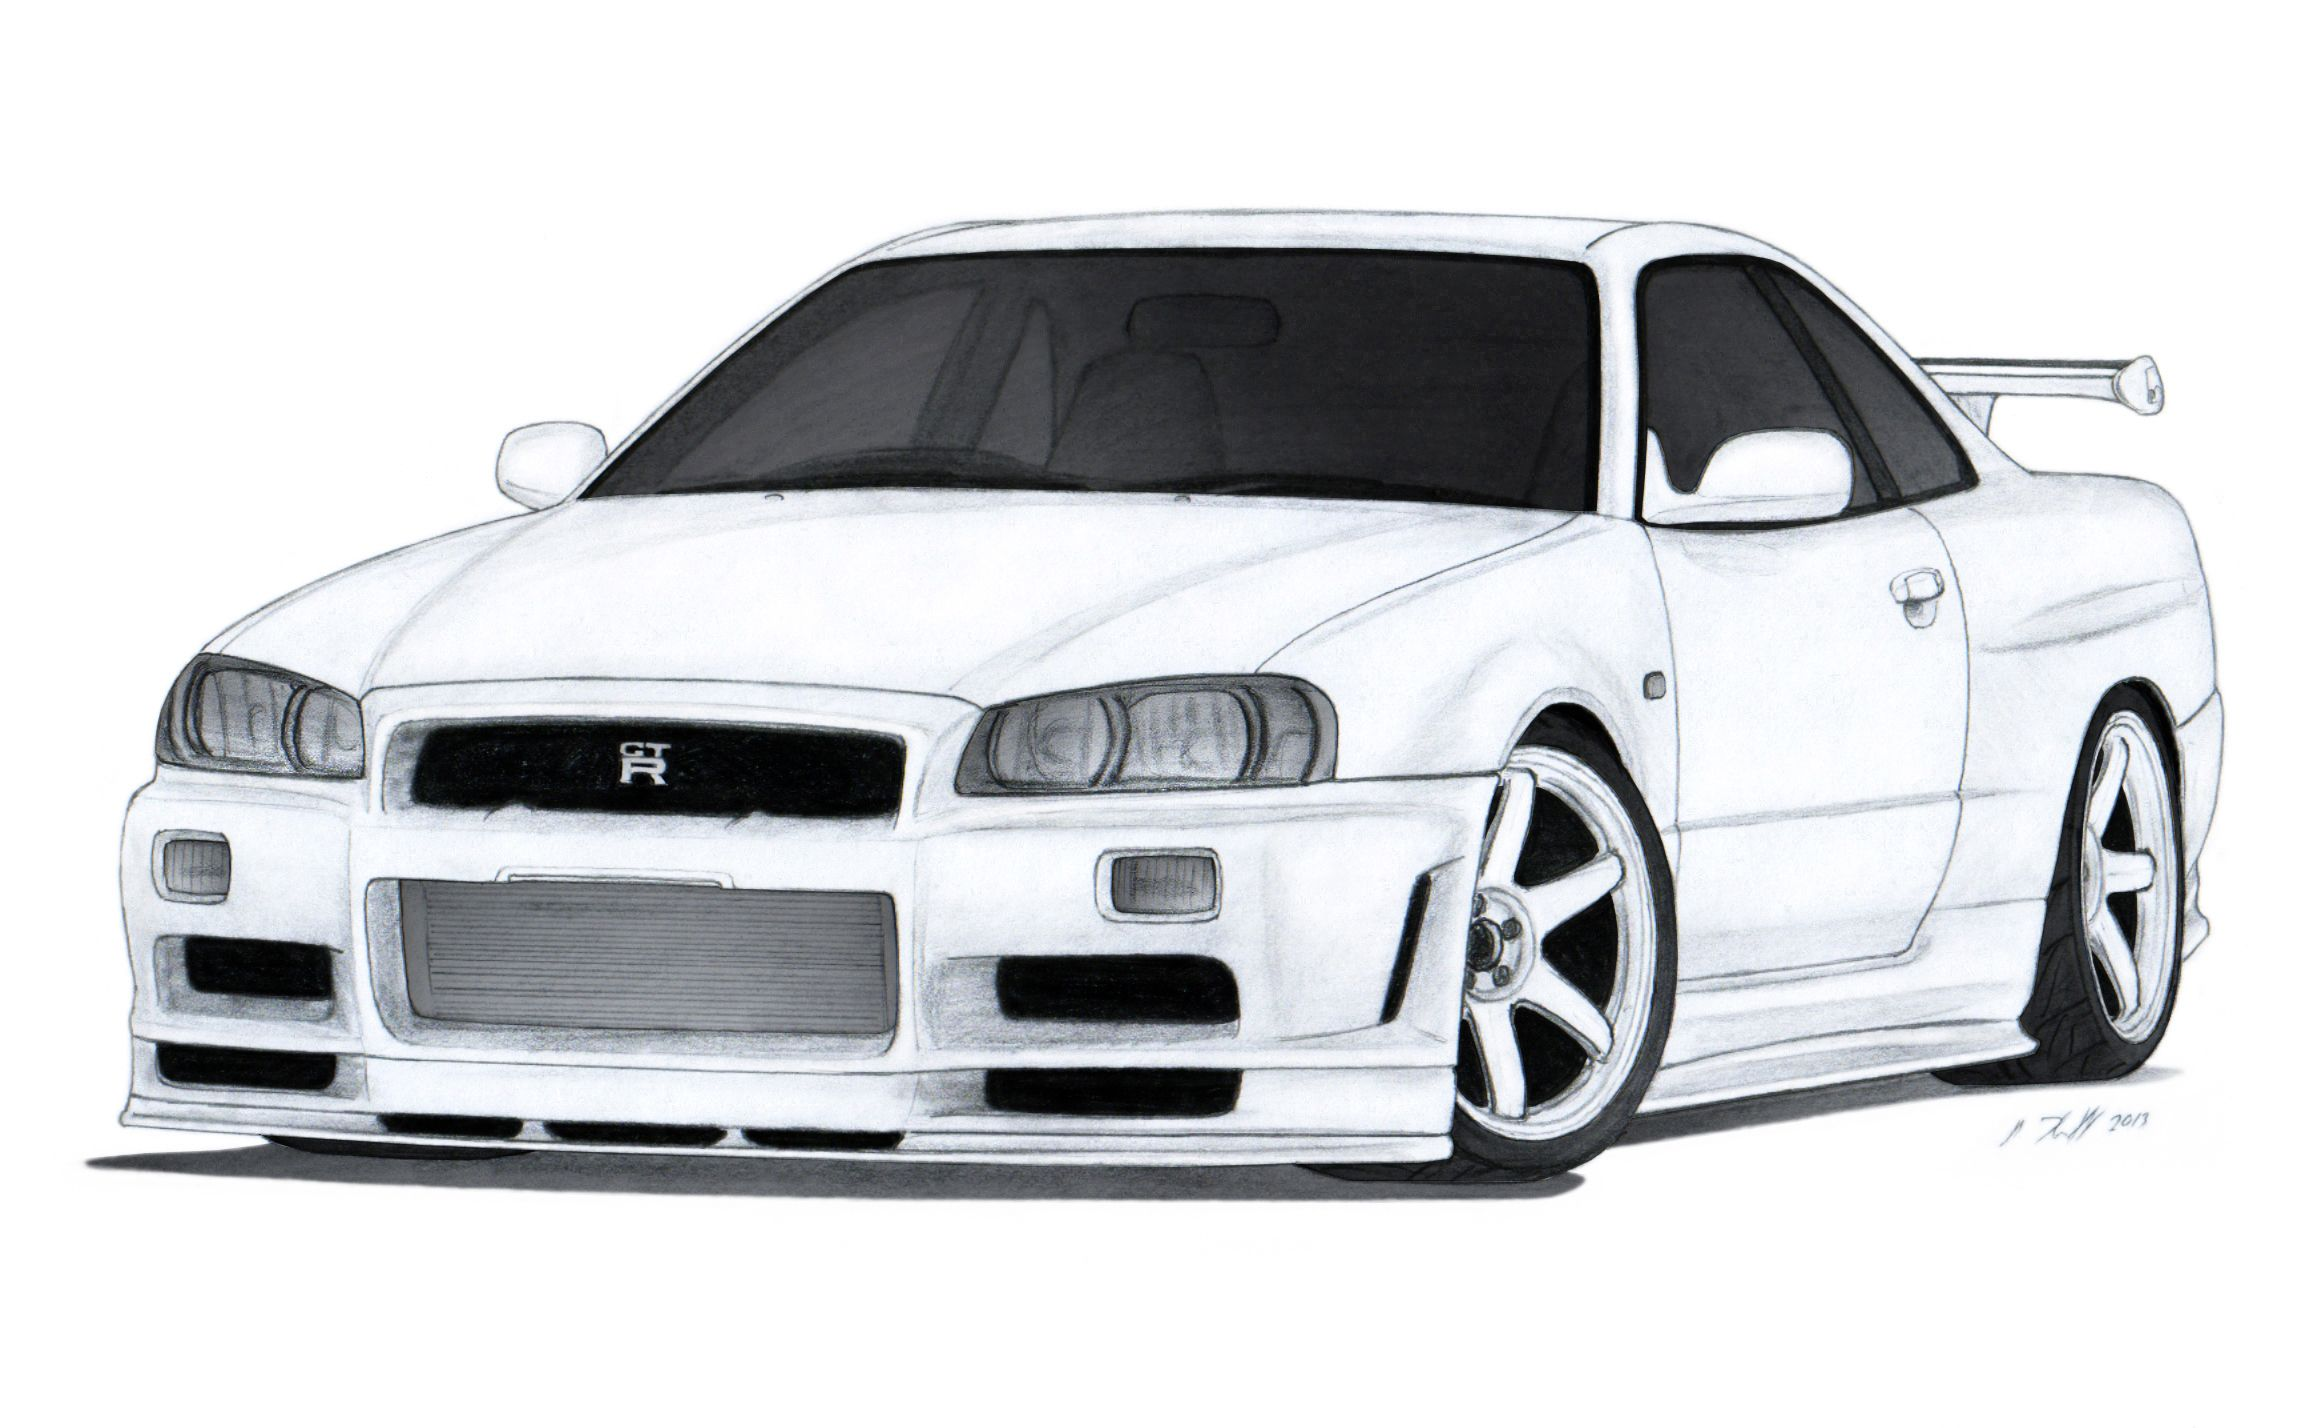 Nissan Skyline GT-R R34 Drawing by Vertualissimo.deviantart.com on ...